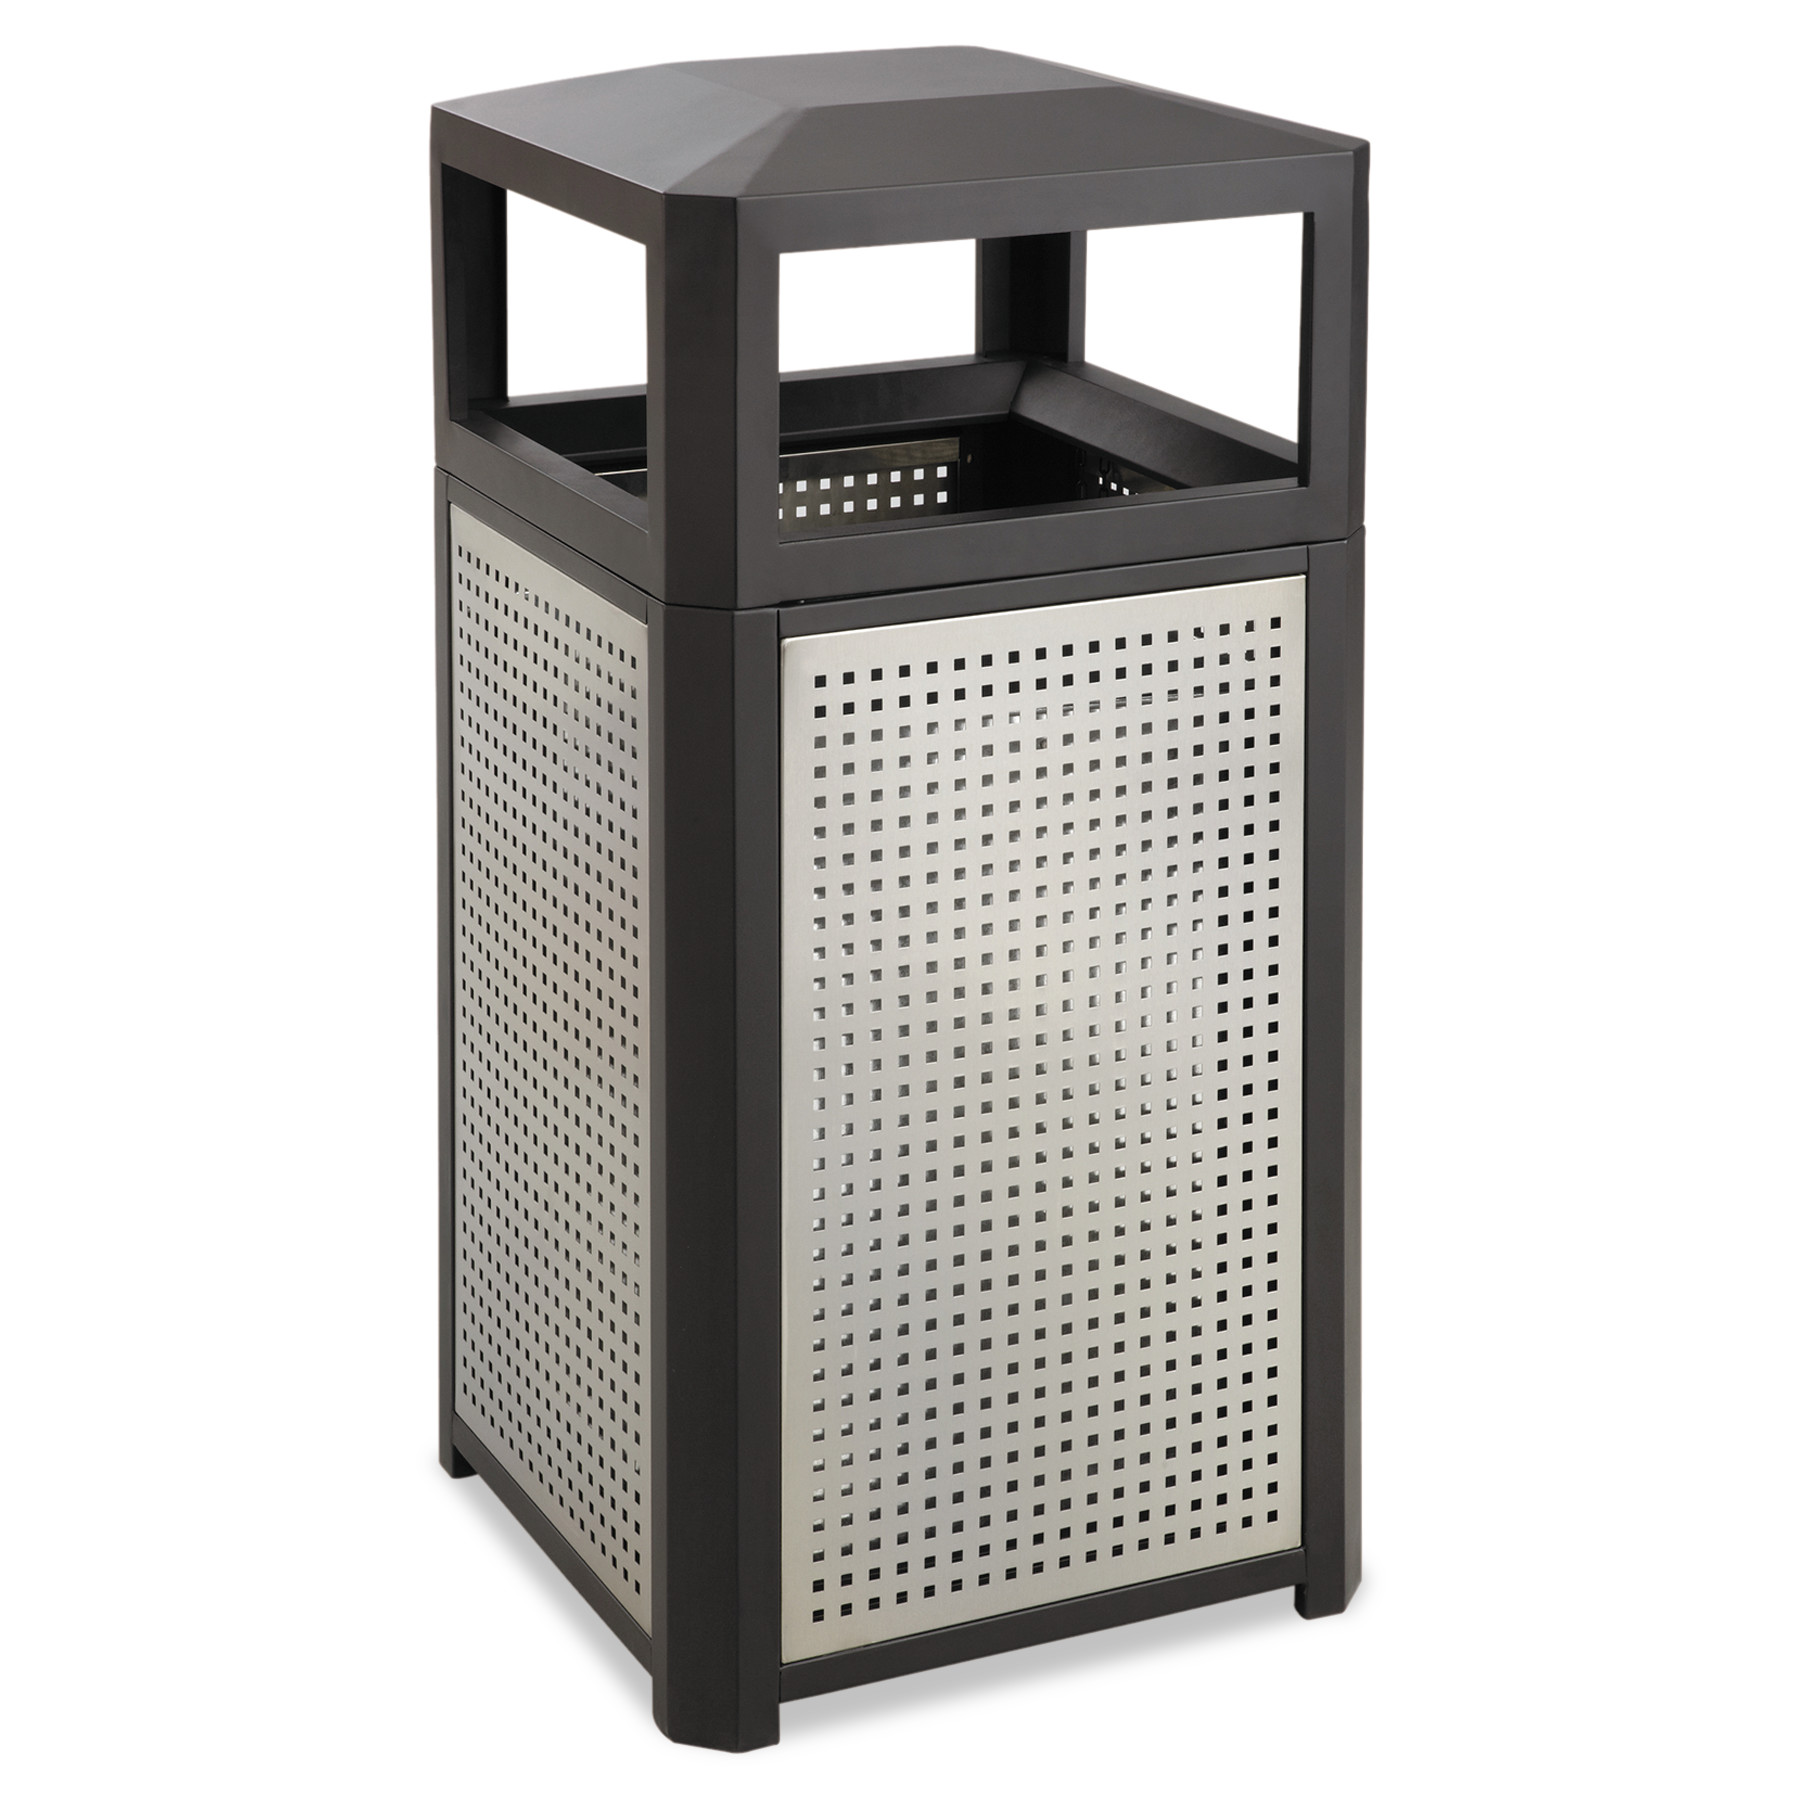 Safco Evos Series Steel Waste Container, 15gal, Black -SAF9932BL